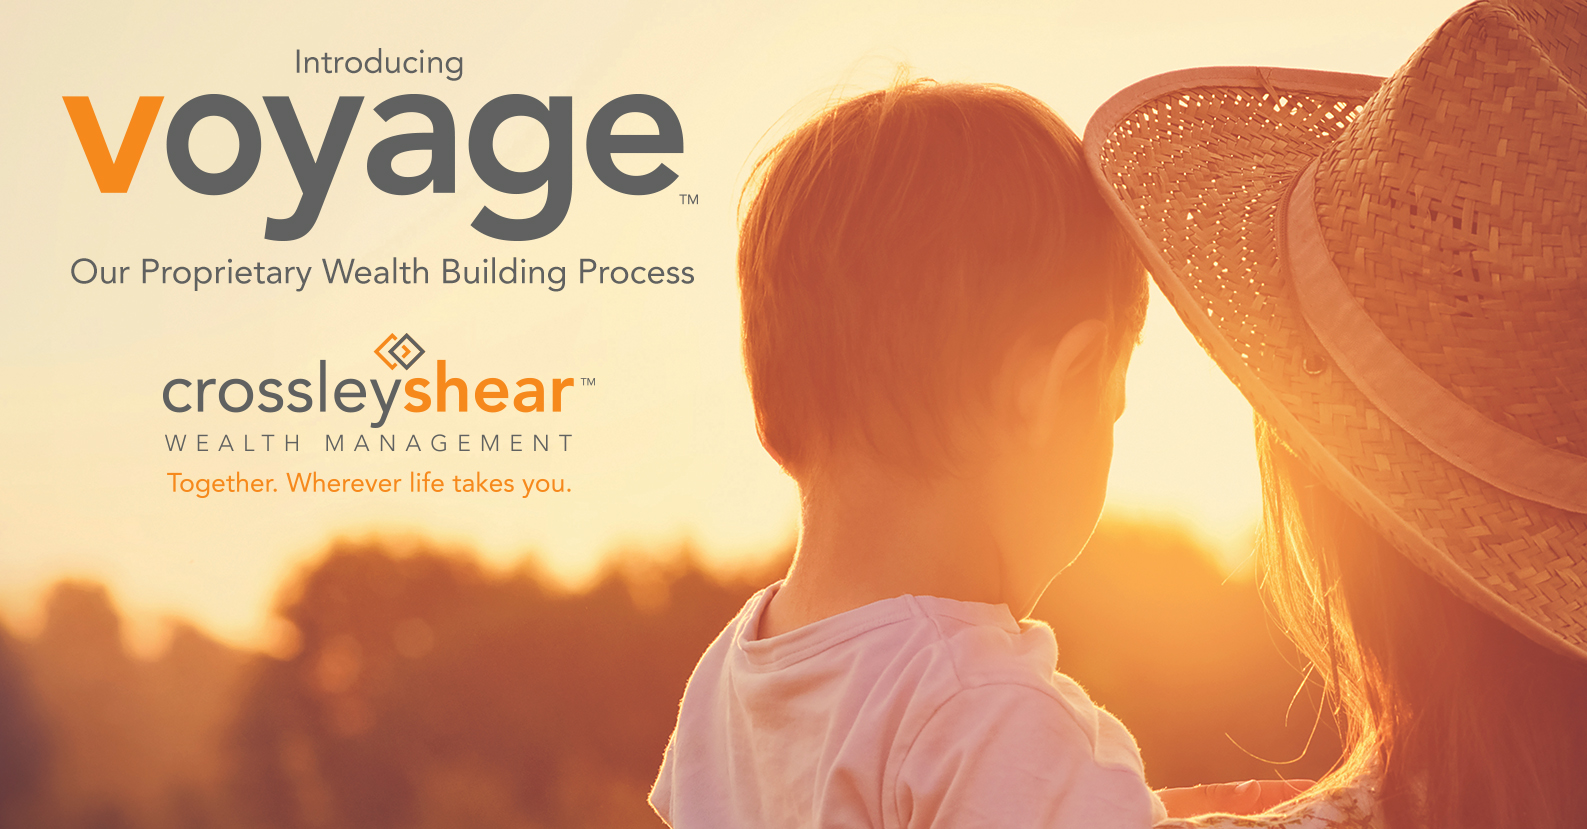 CrossleyShear Wealth Management Announces the Launch of Voyage